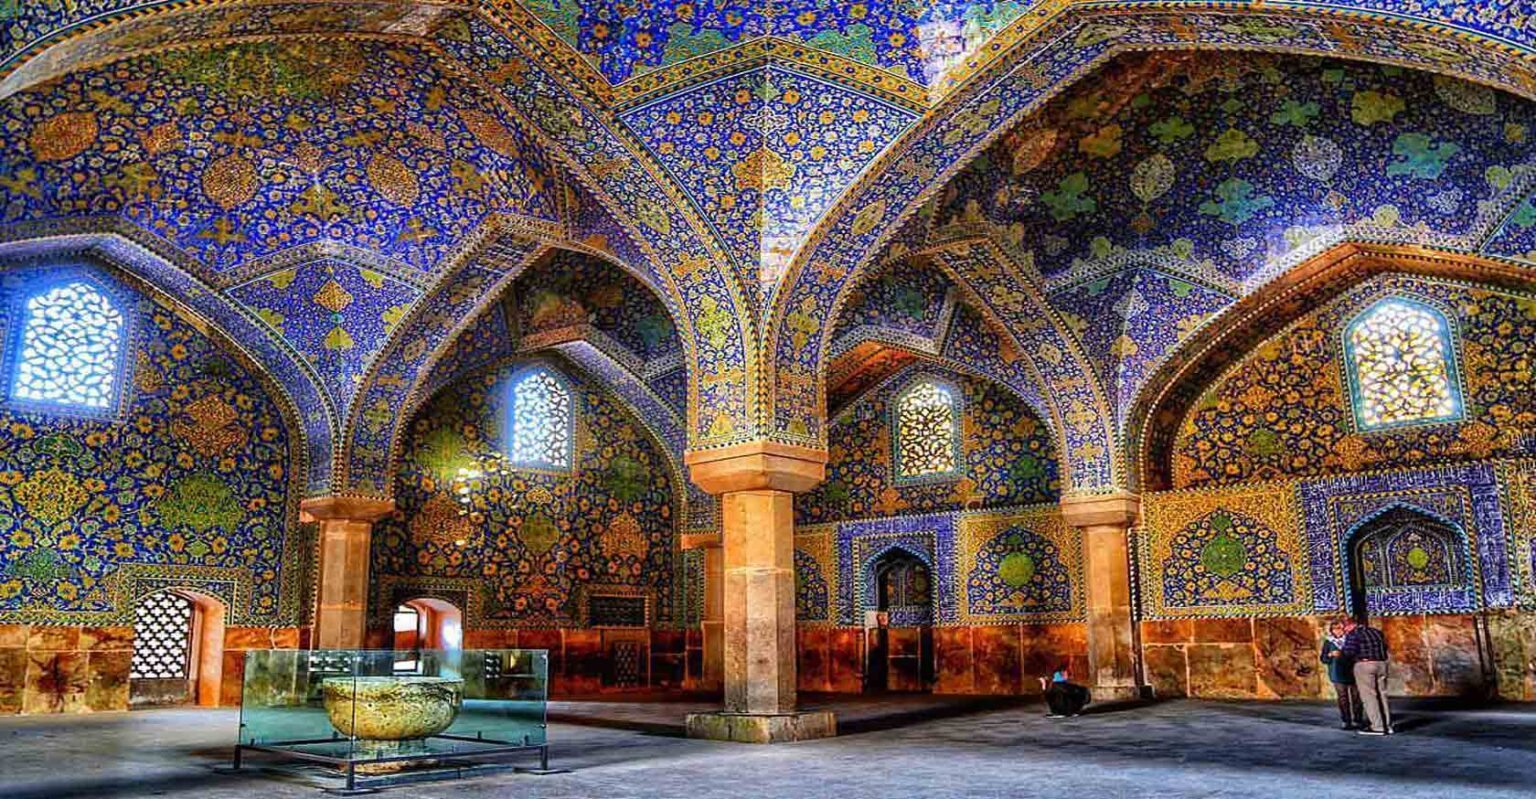 jame mosque of isfahan esfahan iran